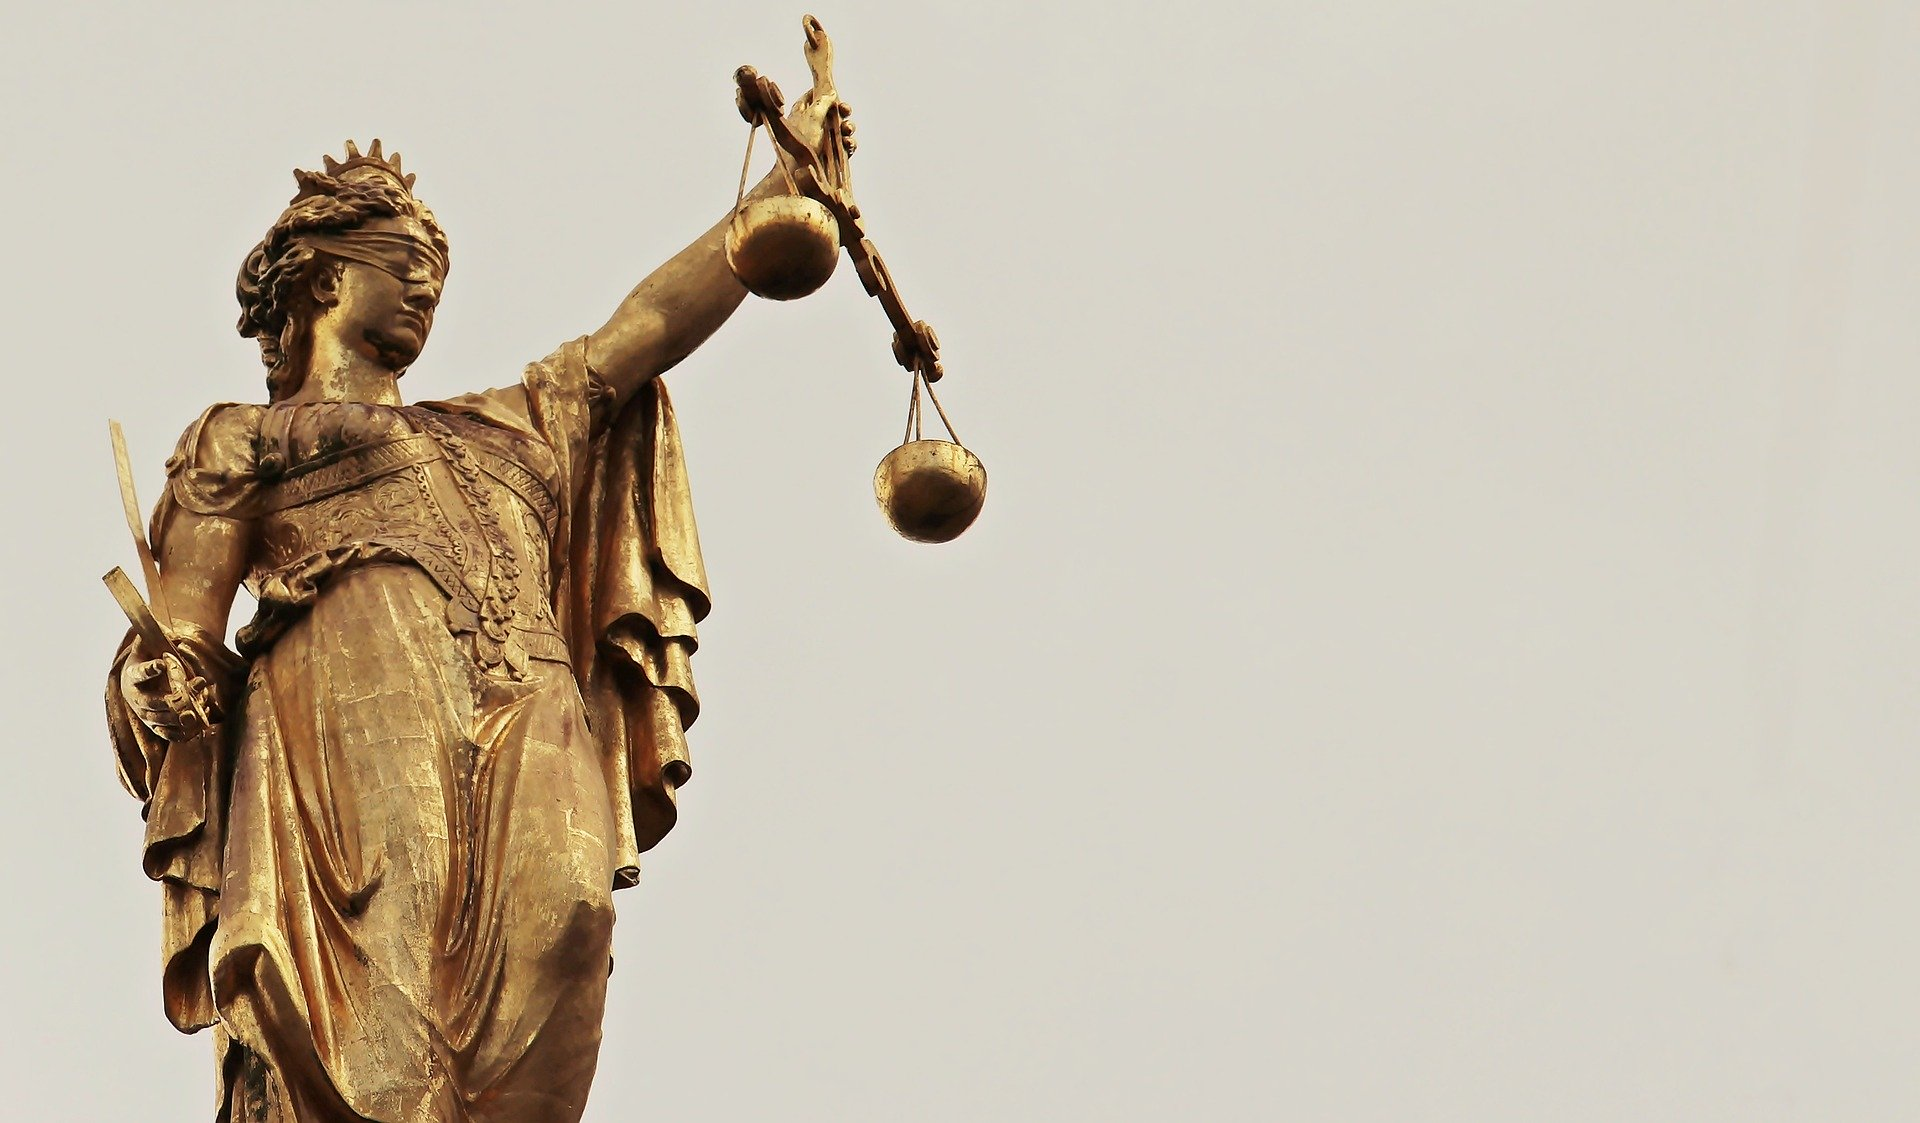 justice court law scales